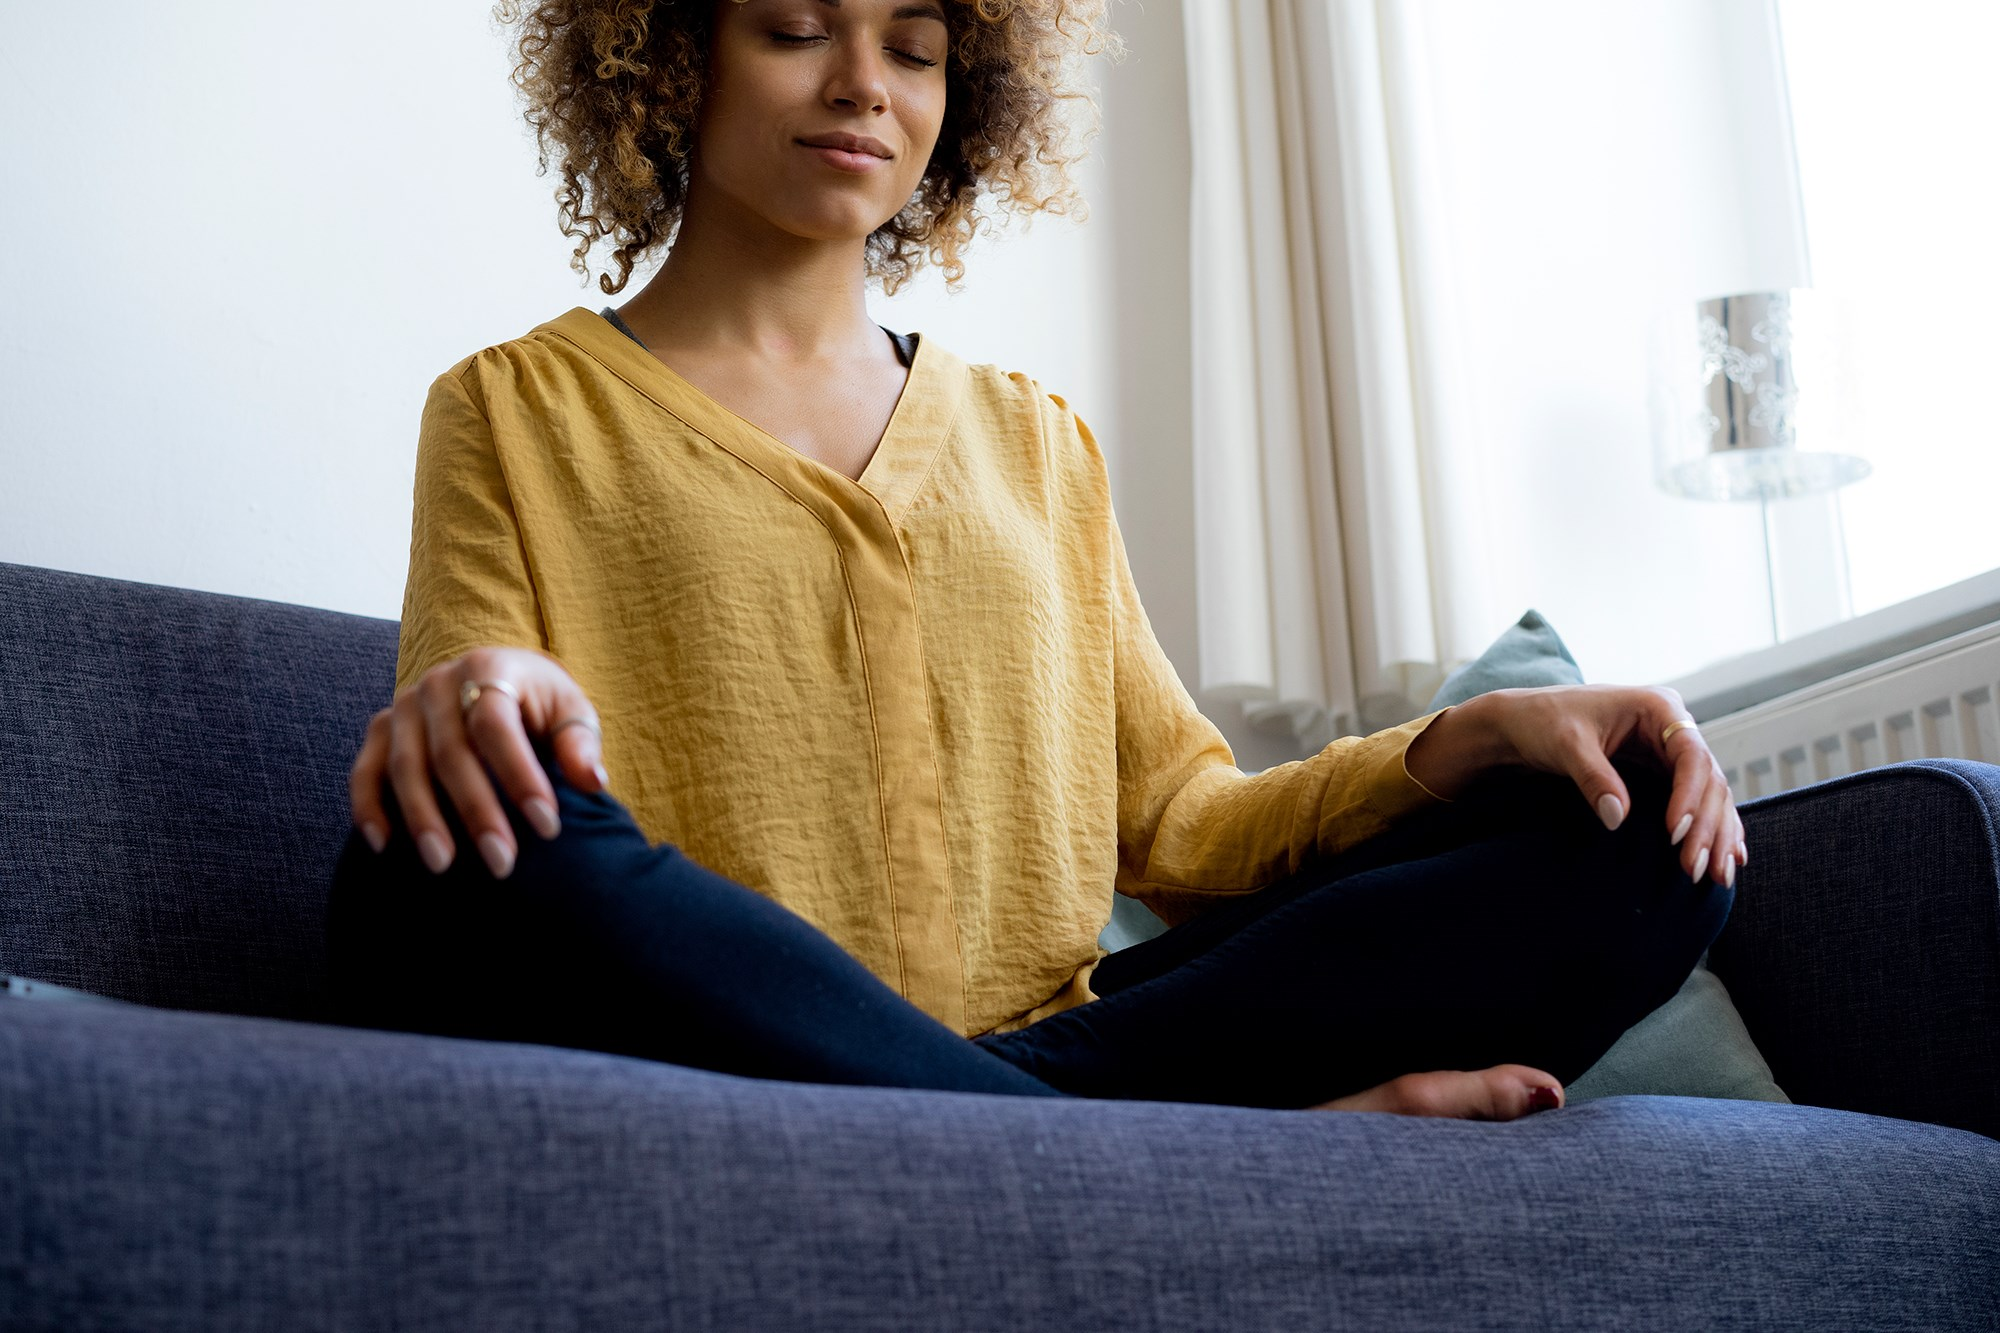 Live or Online Mindfulness-Based Cognitive Therapy Reduced Cancer-Related Psychological Distress